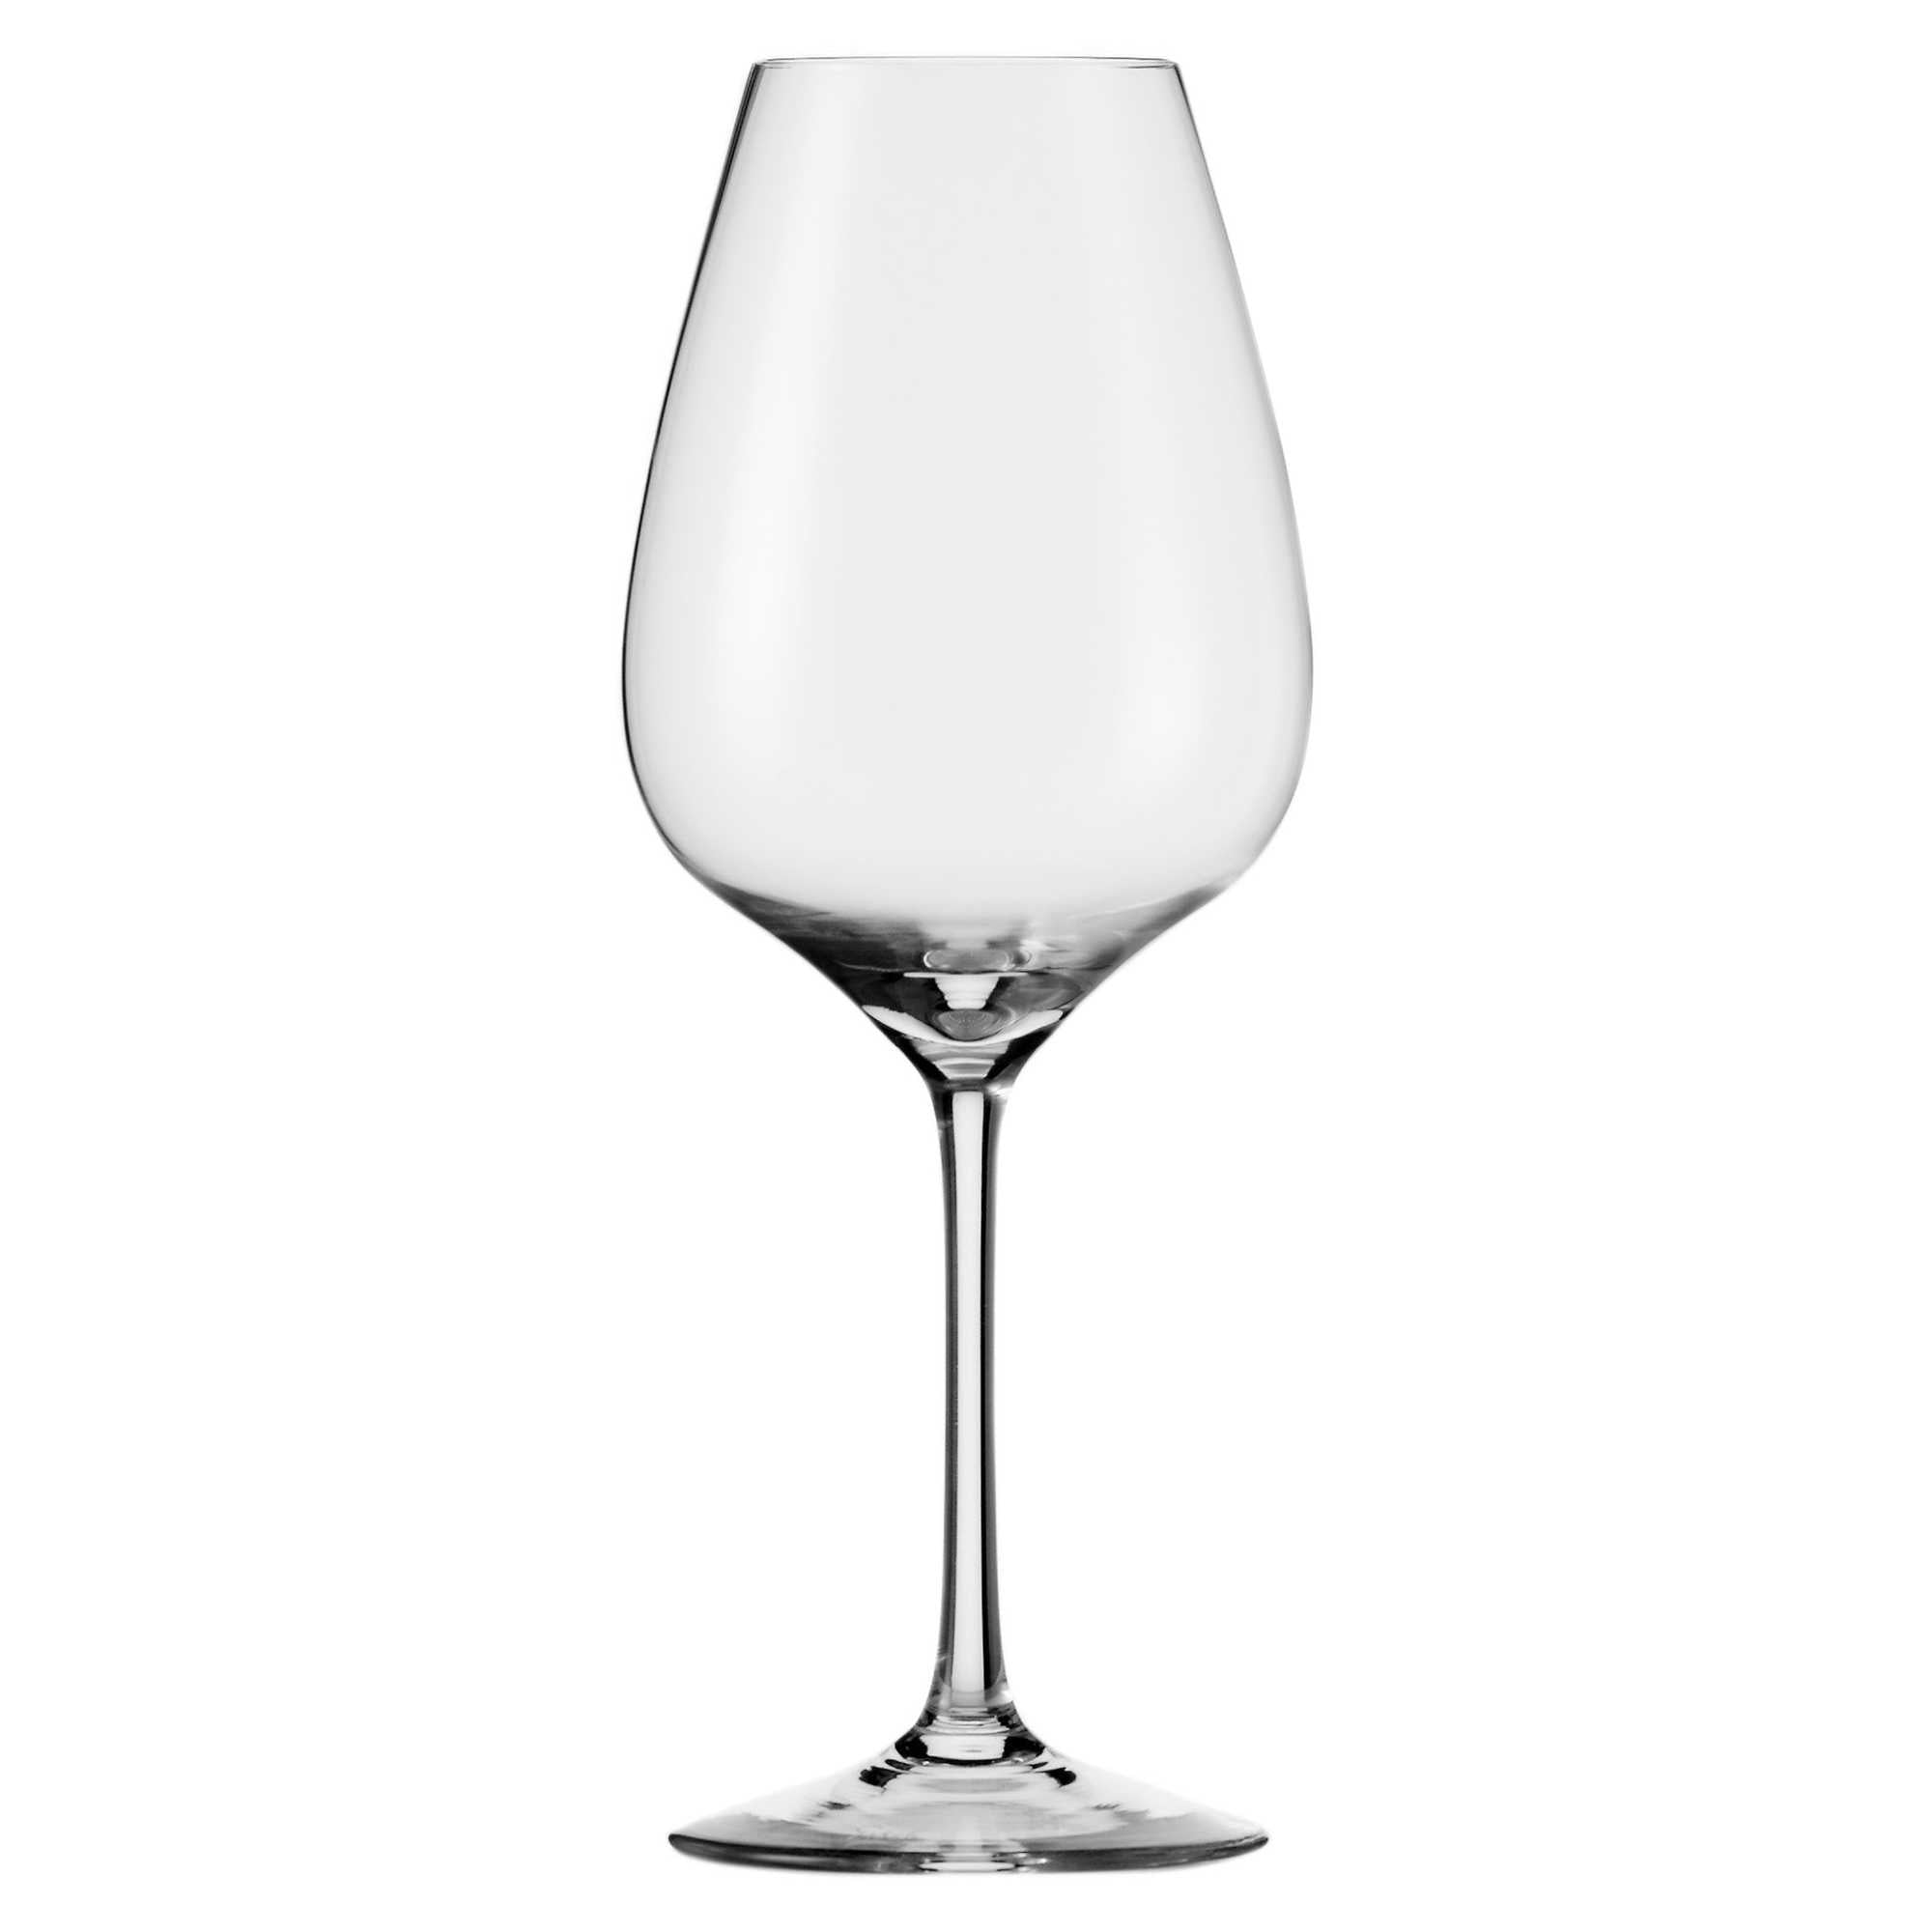 Eisch Superior Sensis Plus Petite Syrah Glasses (Set of 2)